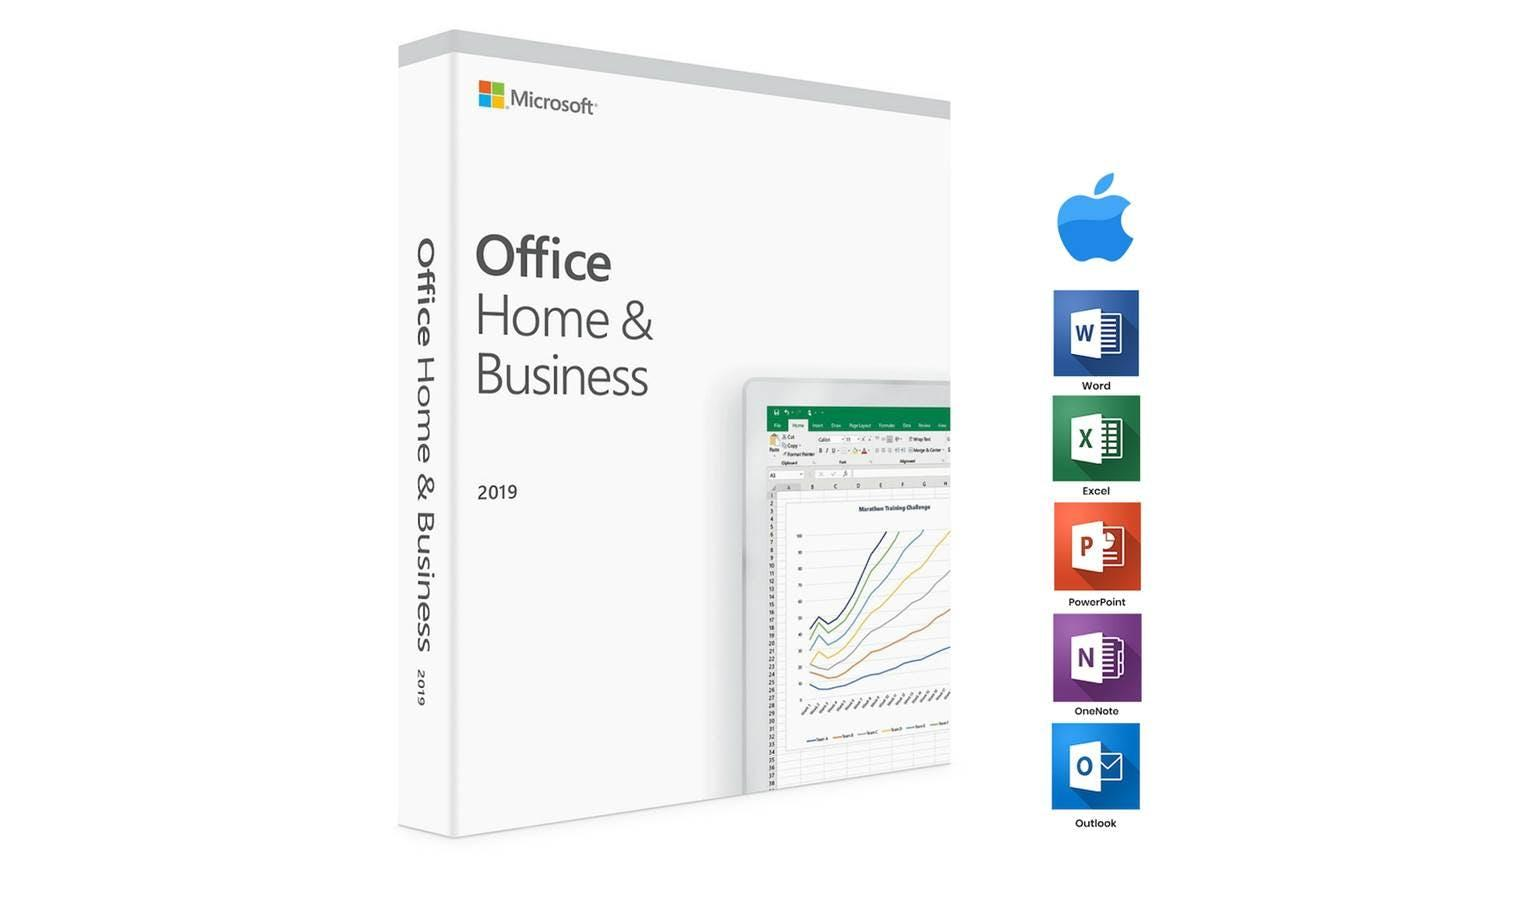 Microsoft Office 2019 Office Home & Business CZ T5D-03183 PC/MAC